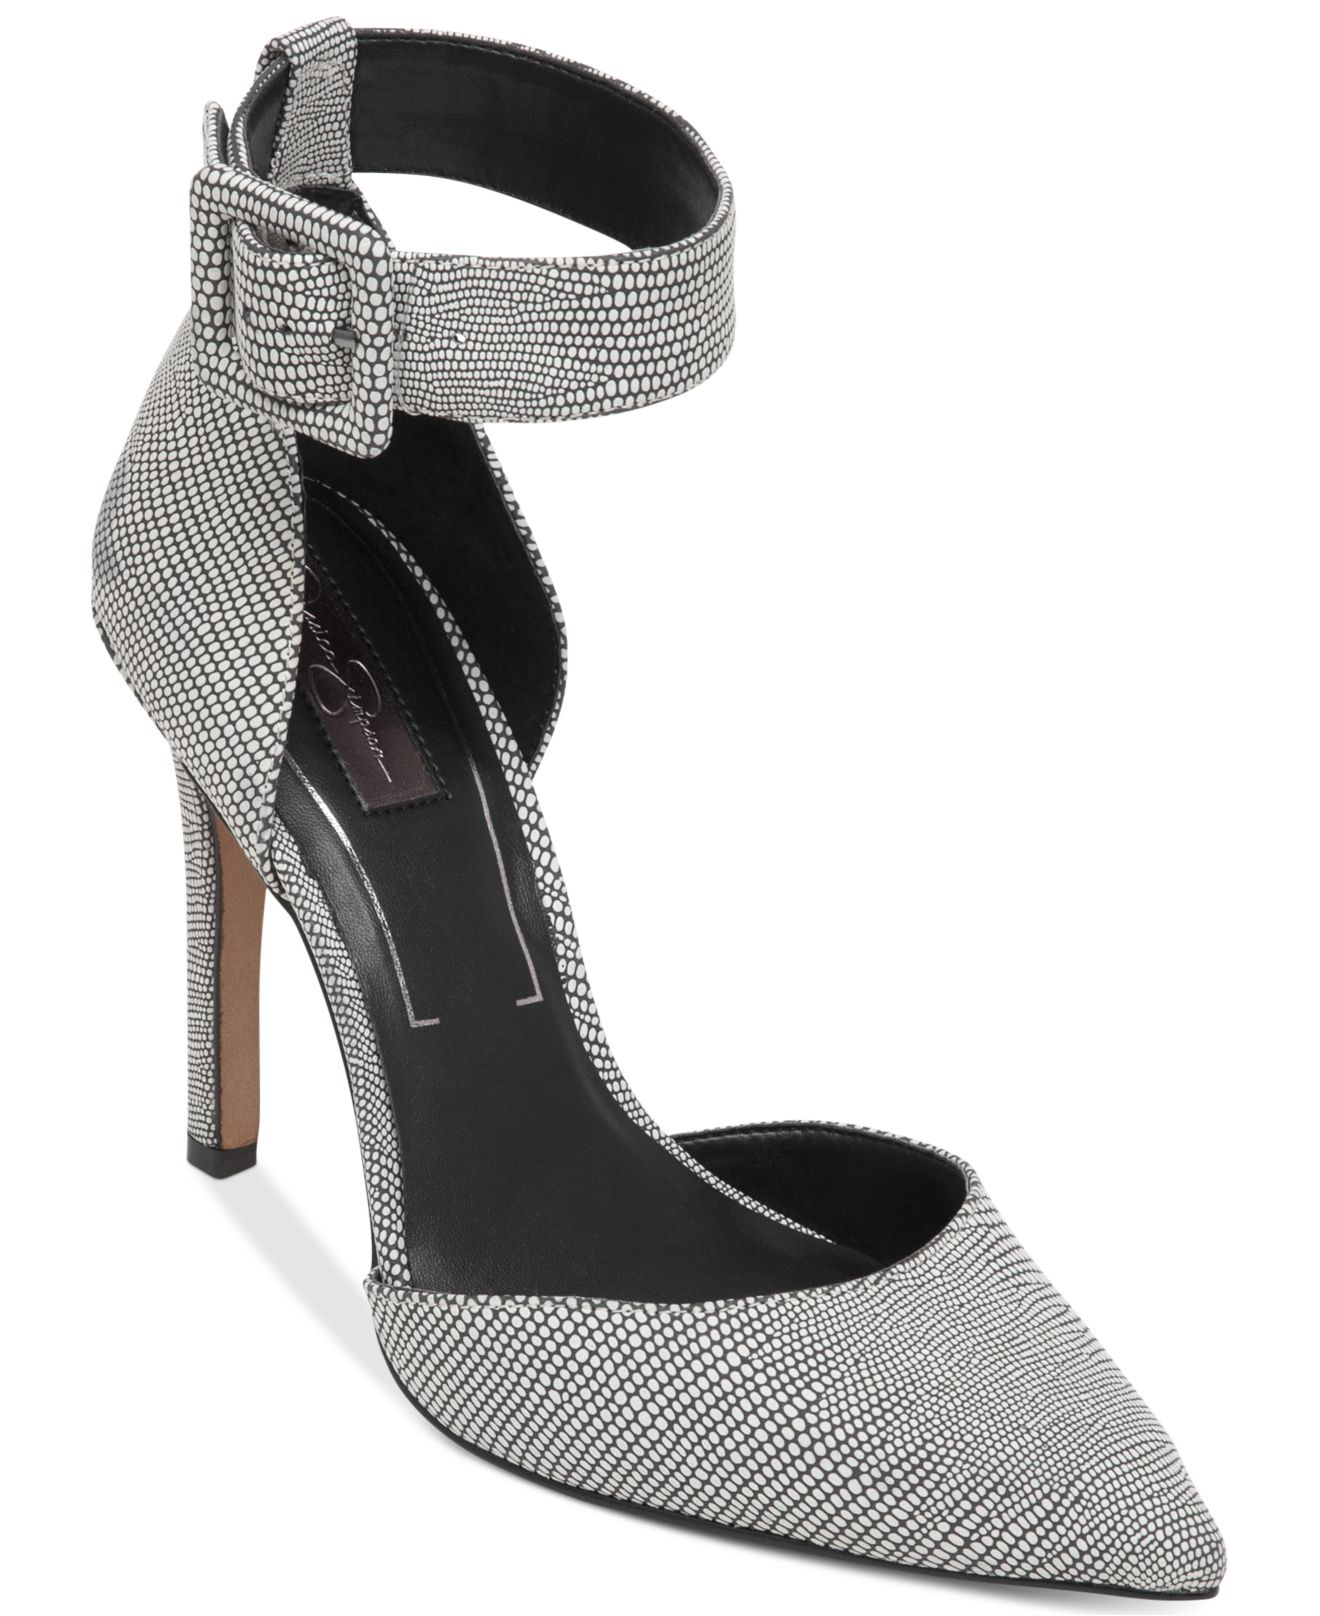 f95ea2bc7b09 Lyst - Jessica Simpson Cayna Ankle Strap Pumps in Metallic